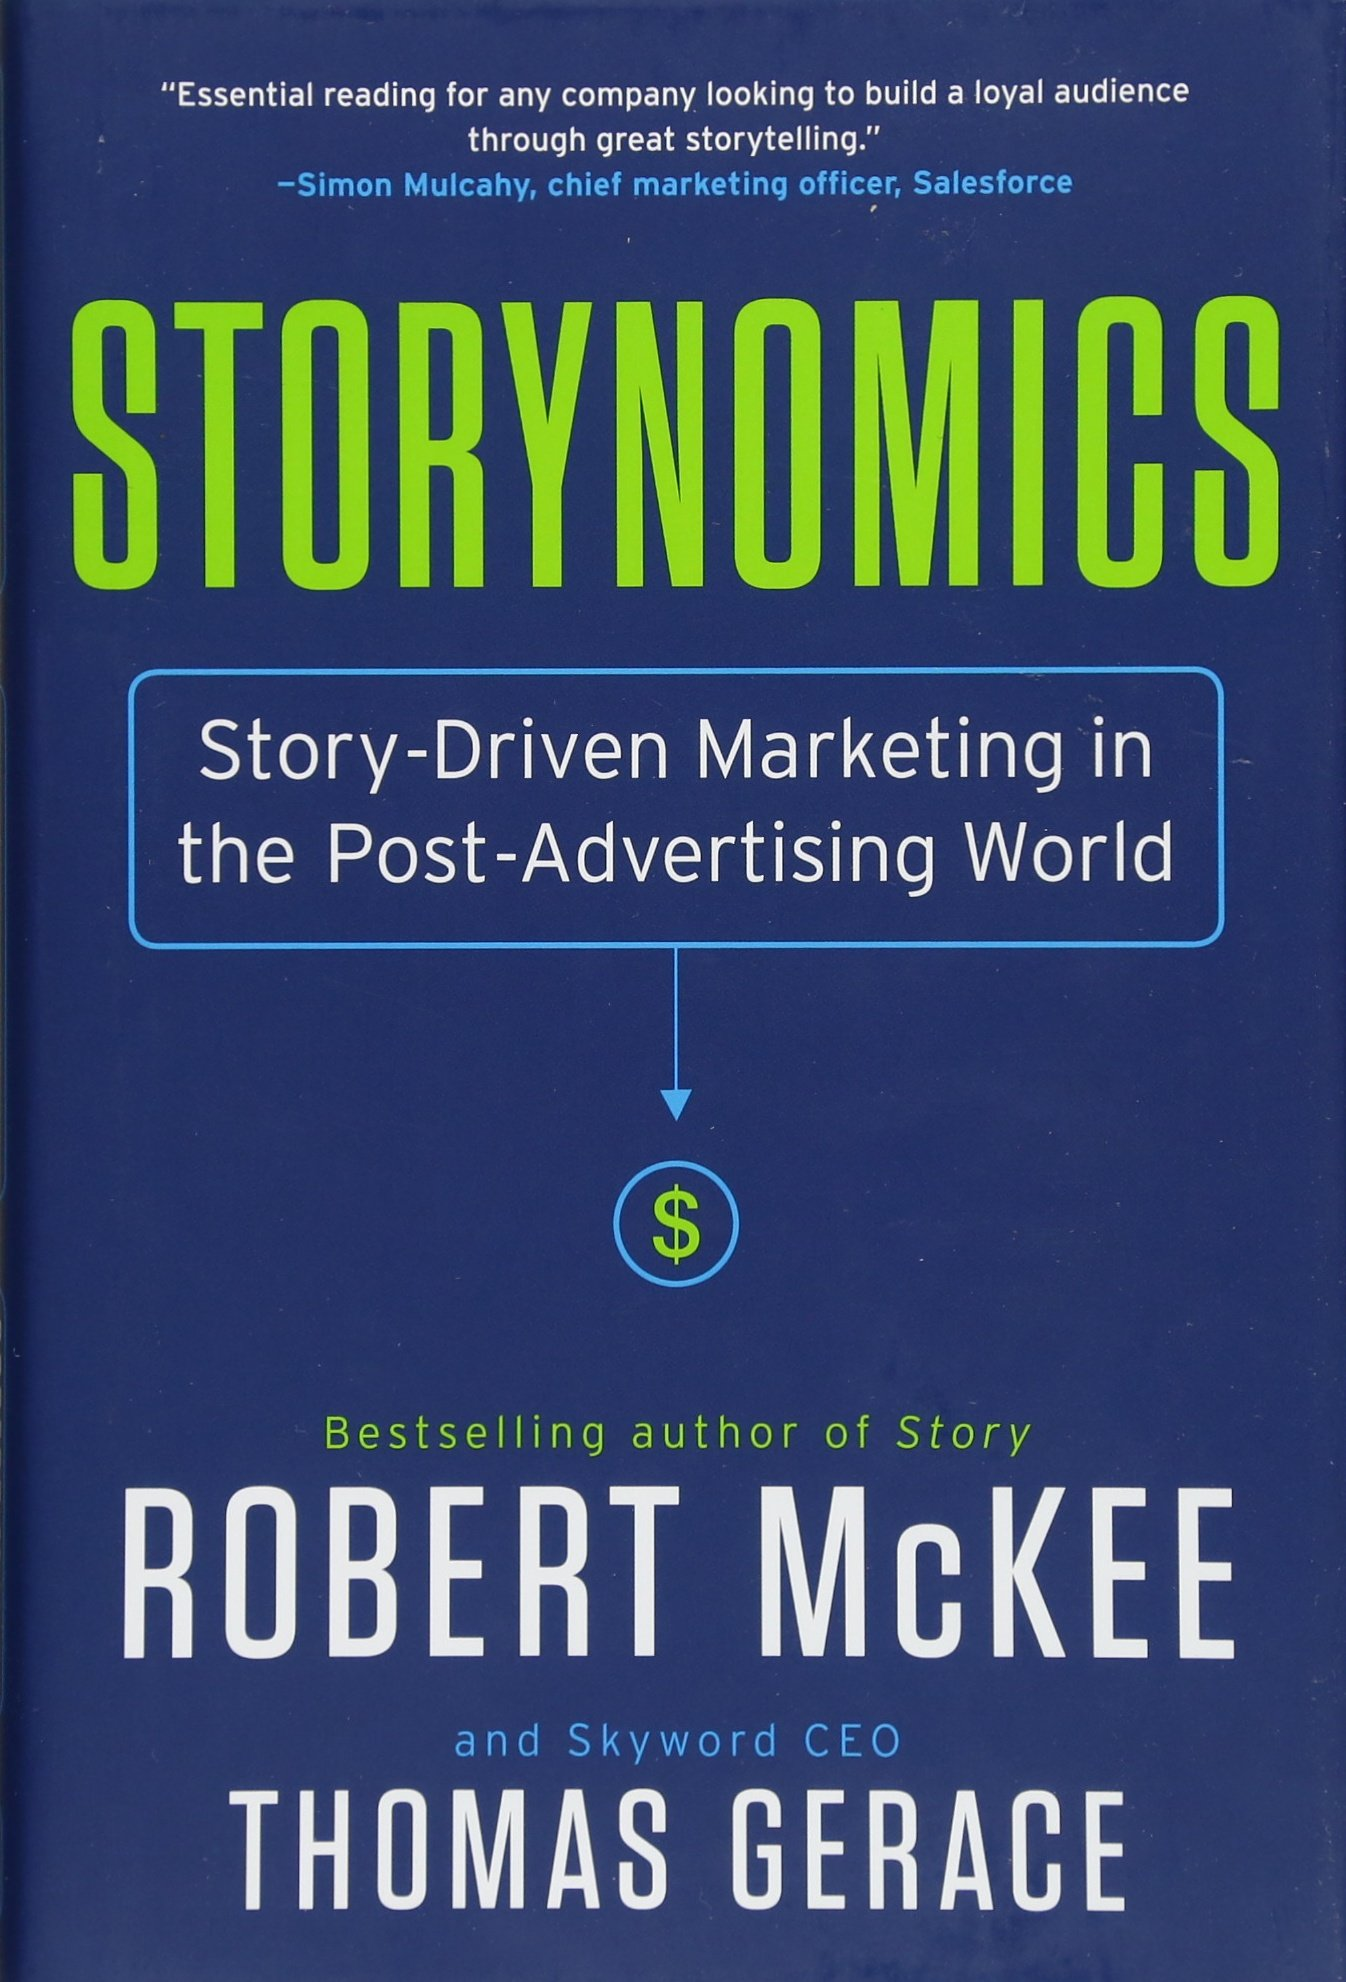 Download Storynomics: Story-Driven Marketing in the Post-Advertising World PDF